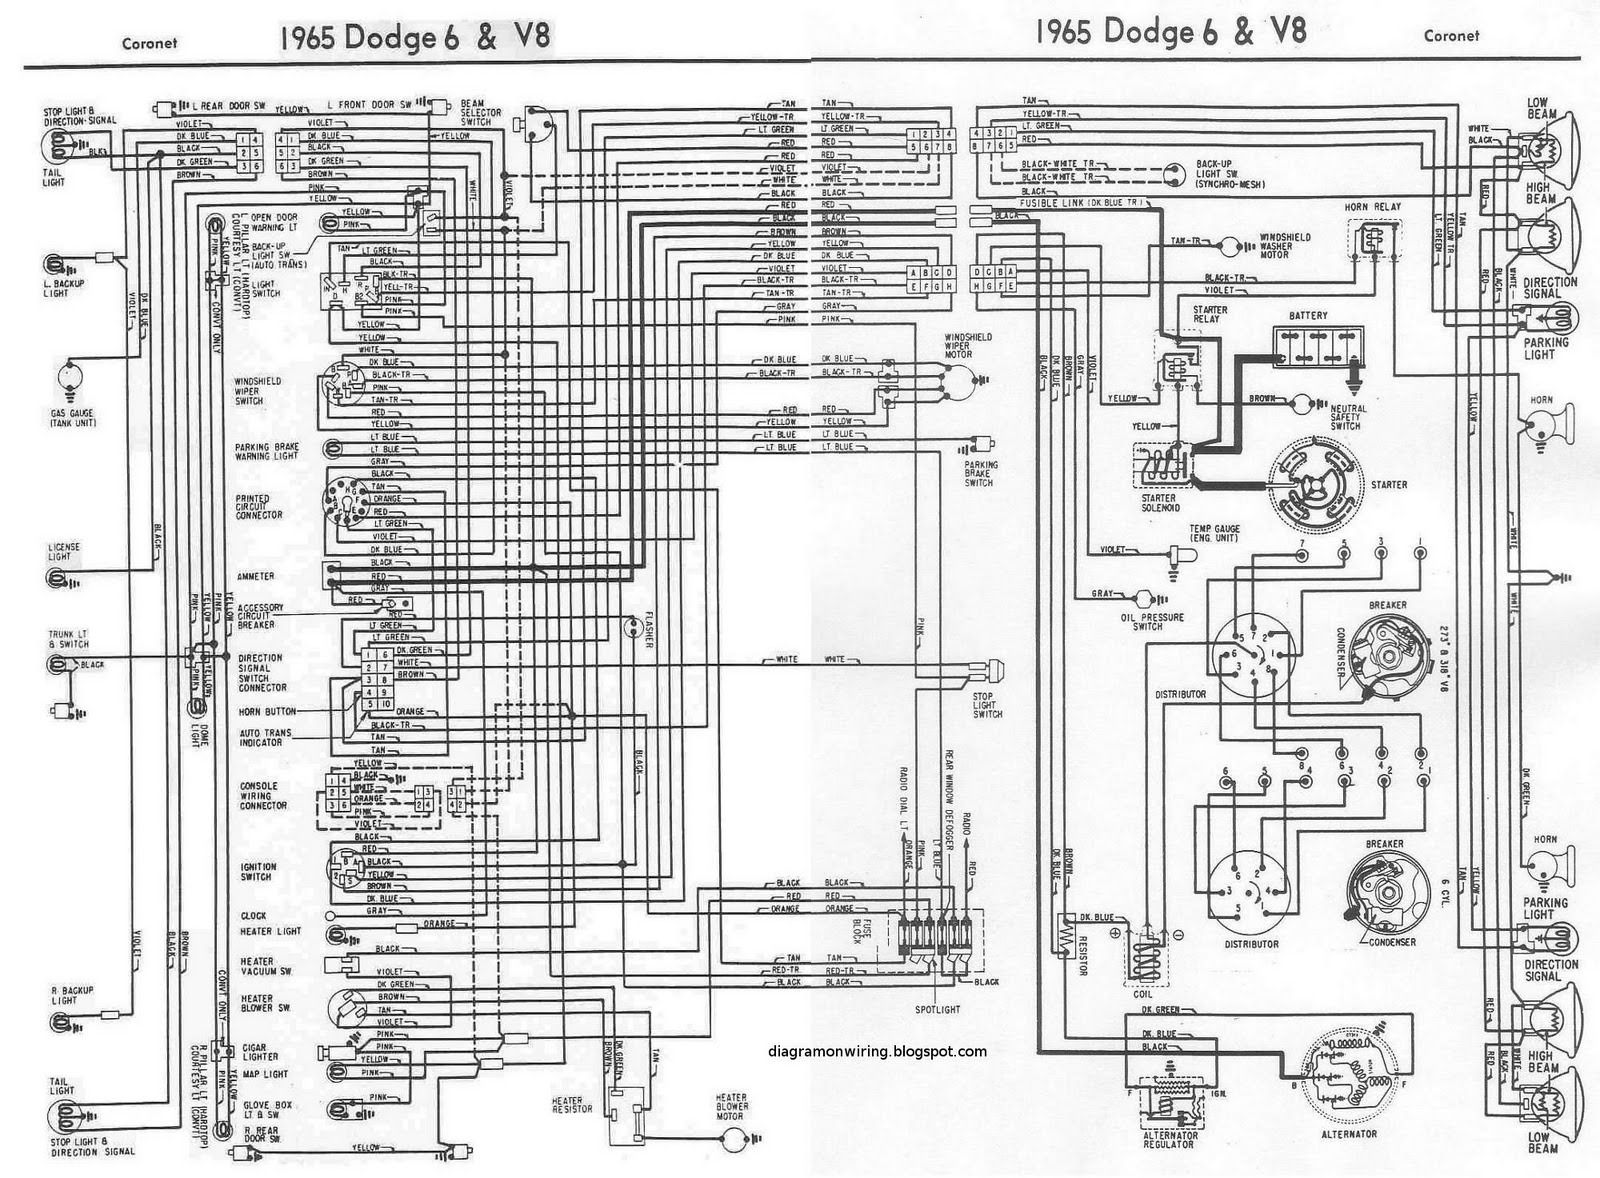 1969 dodge charger wiring harness wiring diagram forward 1969 dodge dart wiring diagram [ 1600 x 1178 Pixel ]